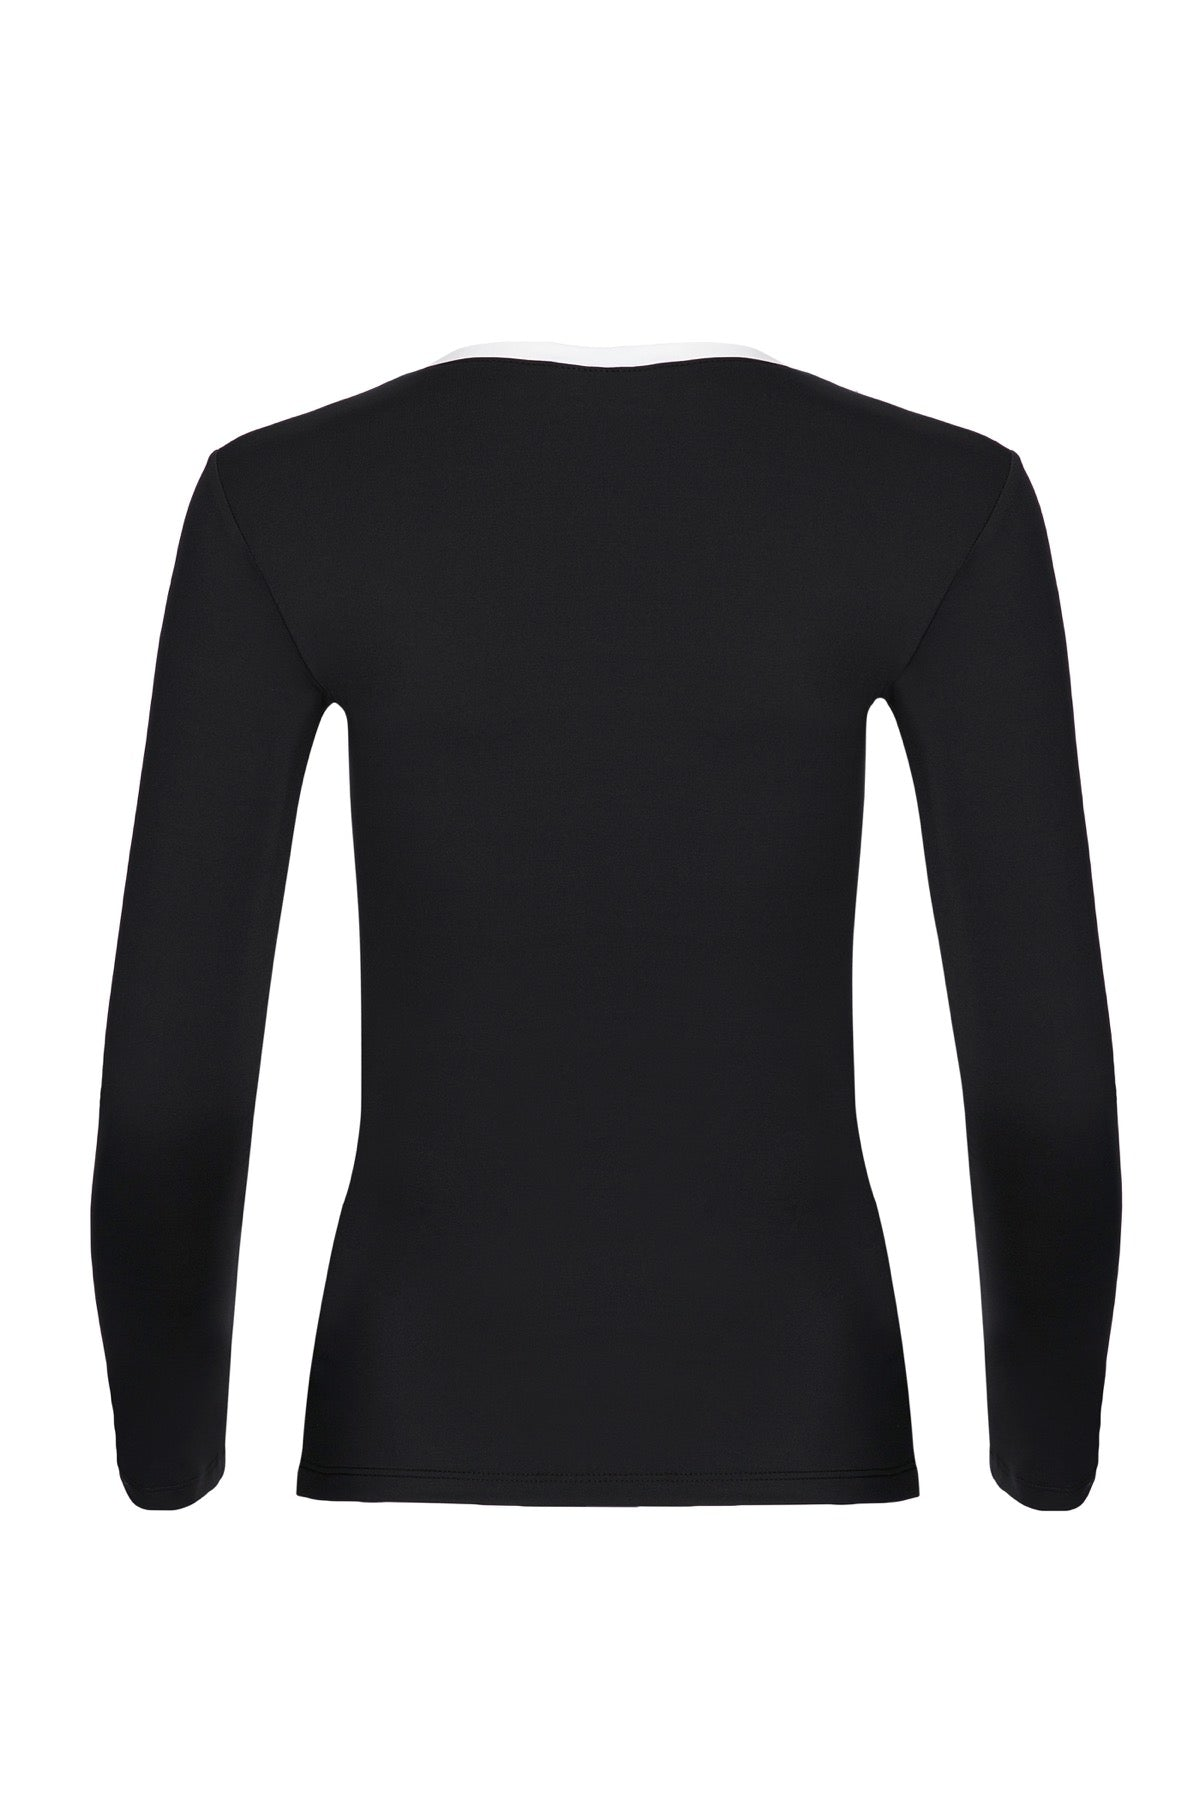 The Perfect T - Long Sleeve - Luminora